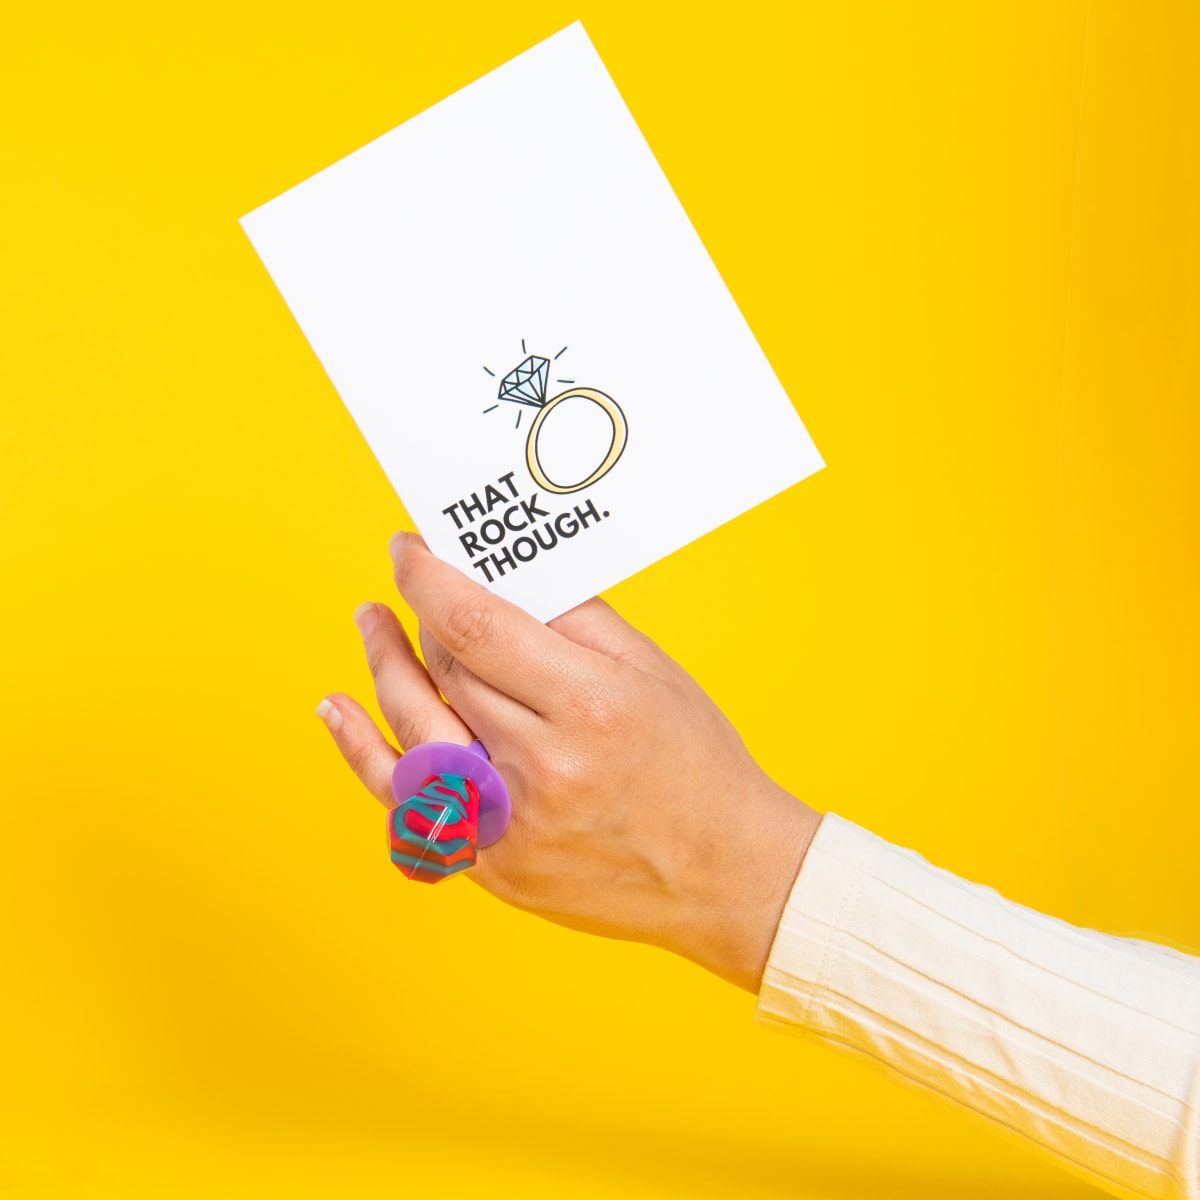 Woman wearing a ring pop holding a card that says 'That rock though'.